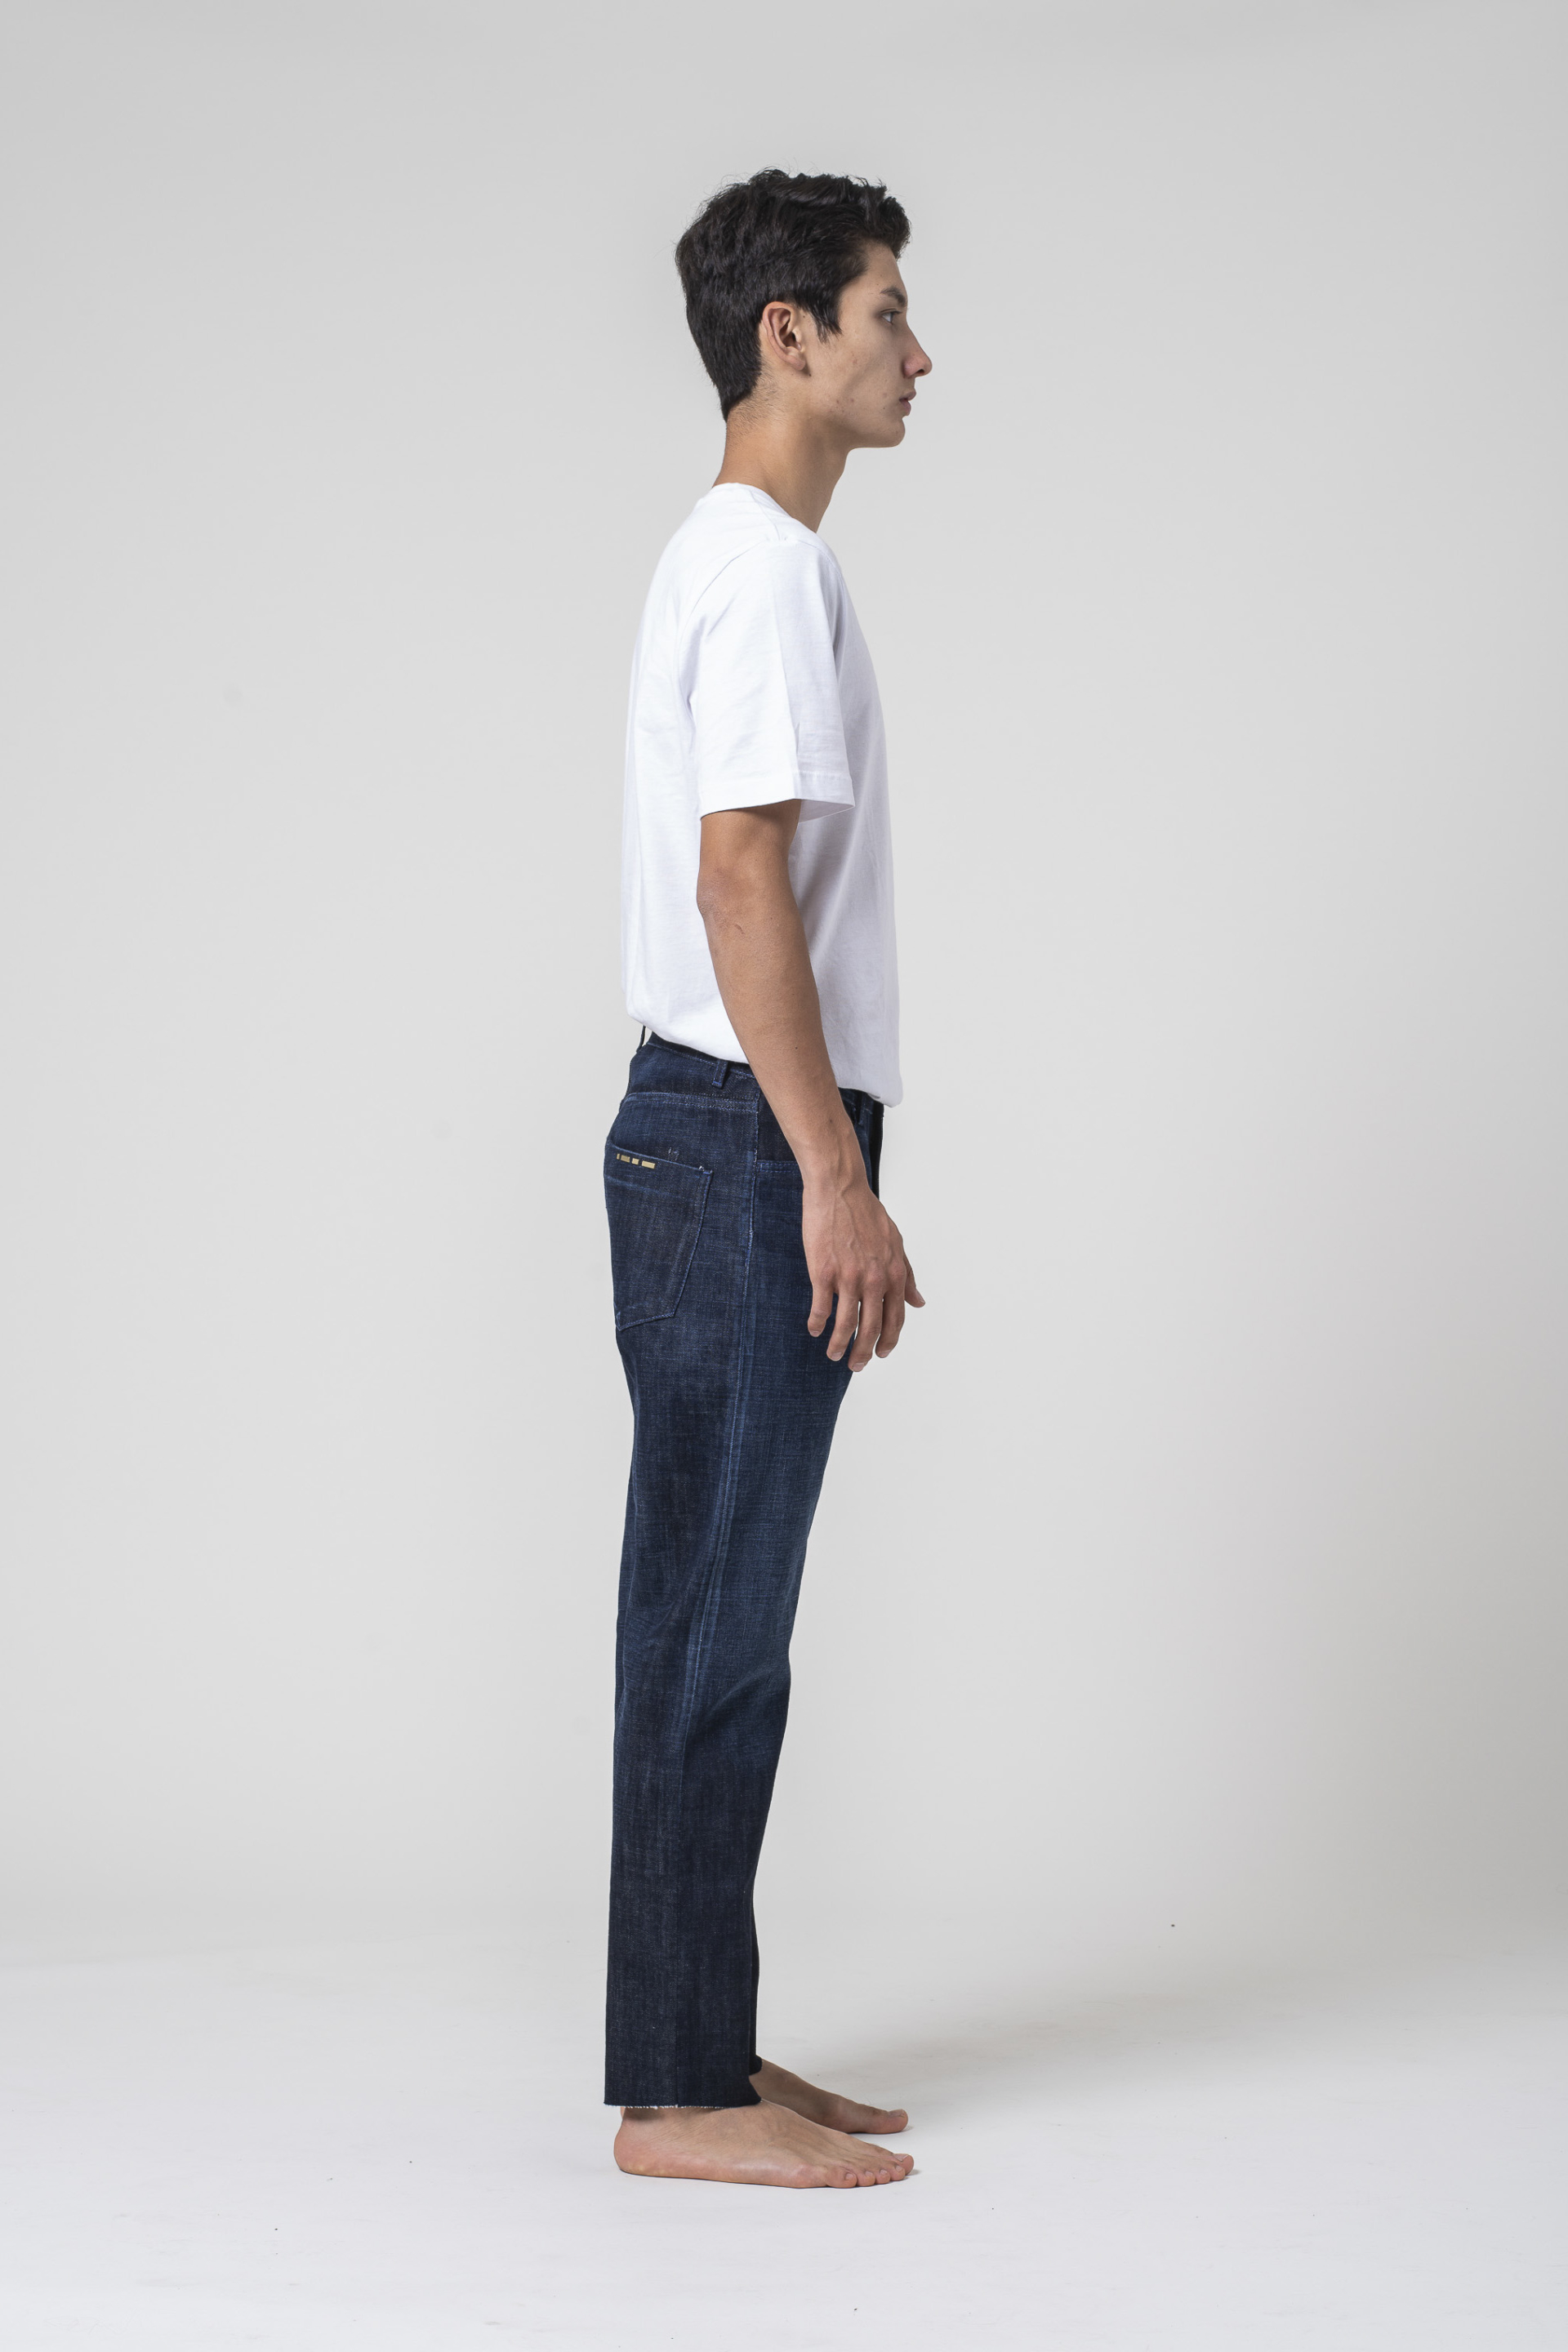 denim jeans Apollo Man Tapered Selvedge Blue slim blue of a kind candiani denim store